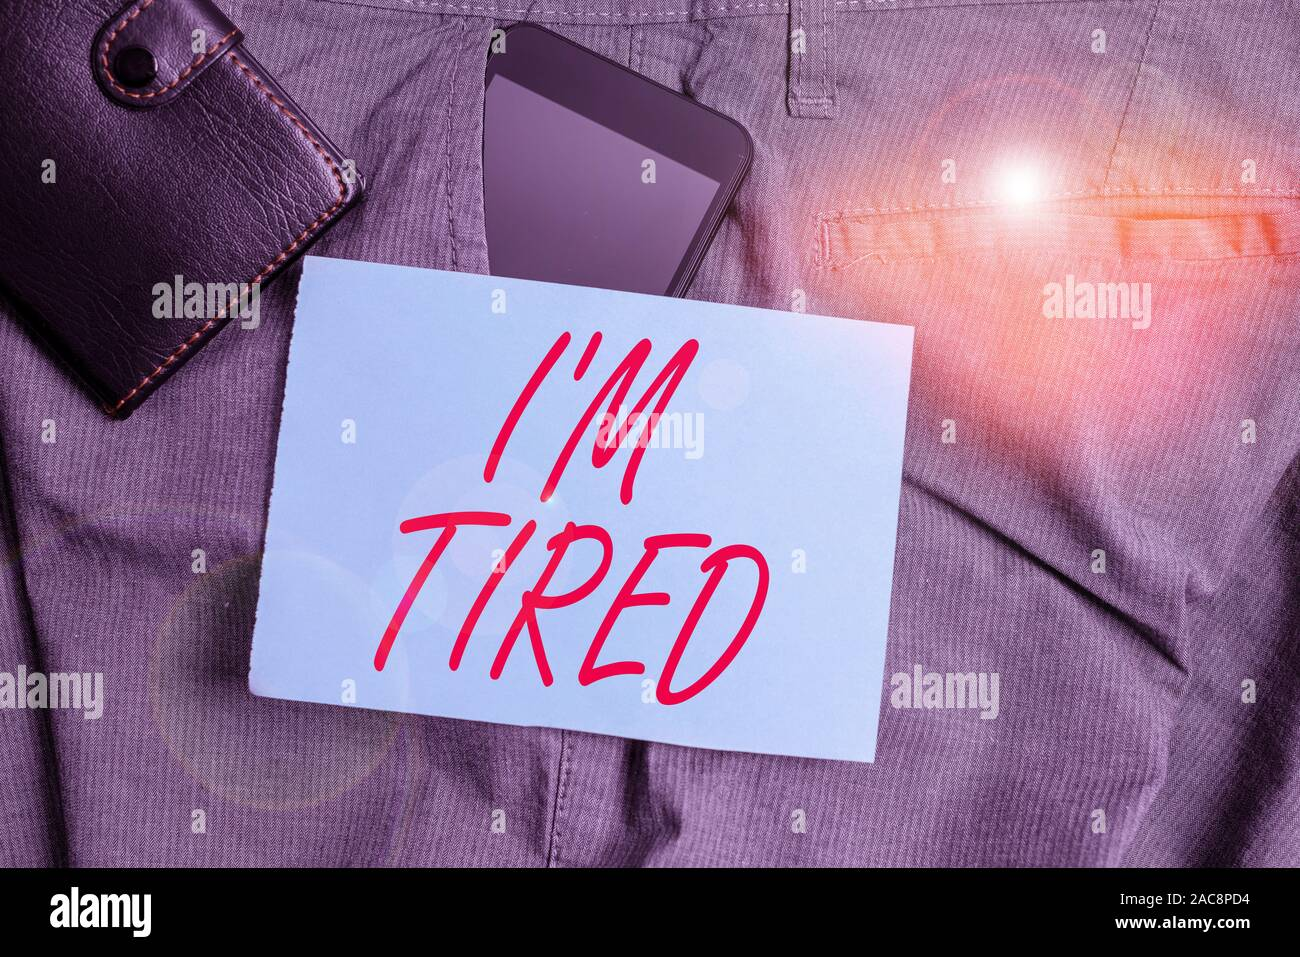 Conceptual Hand Writing Showing I M Tired Concept Meaning Drained Of Strength And Energy Fatigued To The Point Of Exhaustion Smartphone Device Inside Stock Photo Alamy